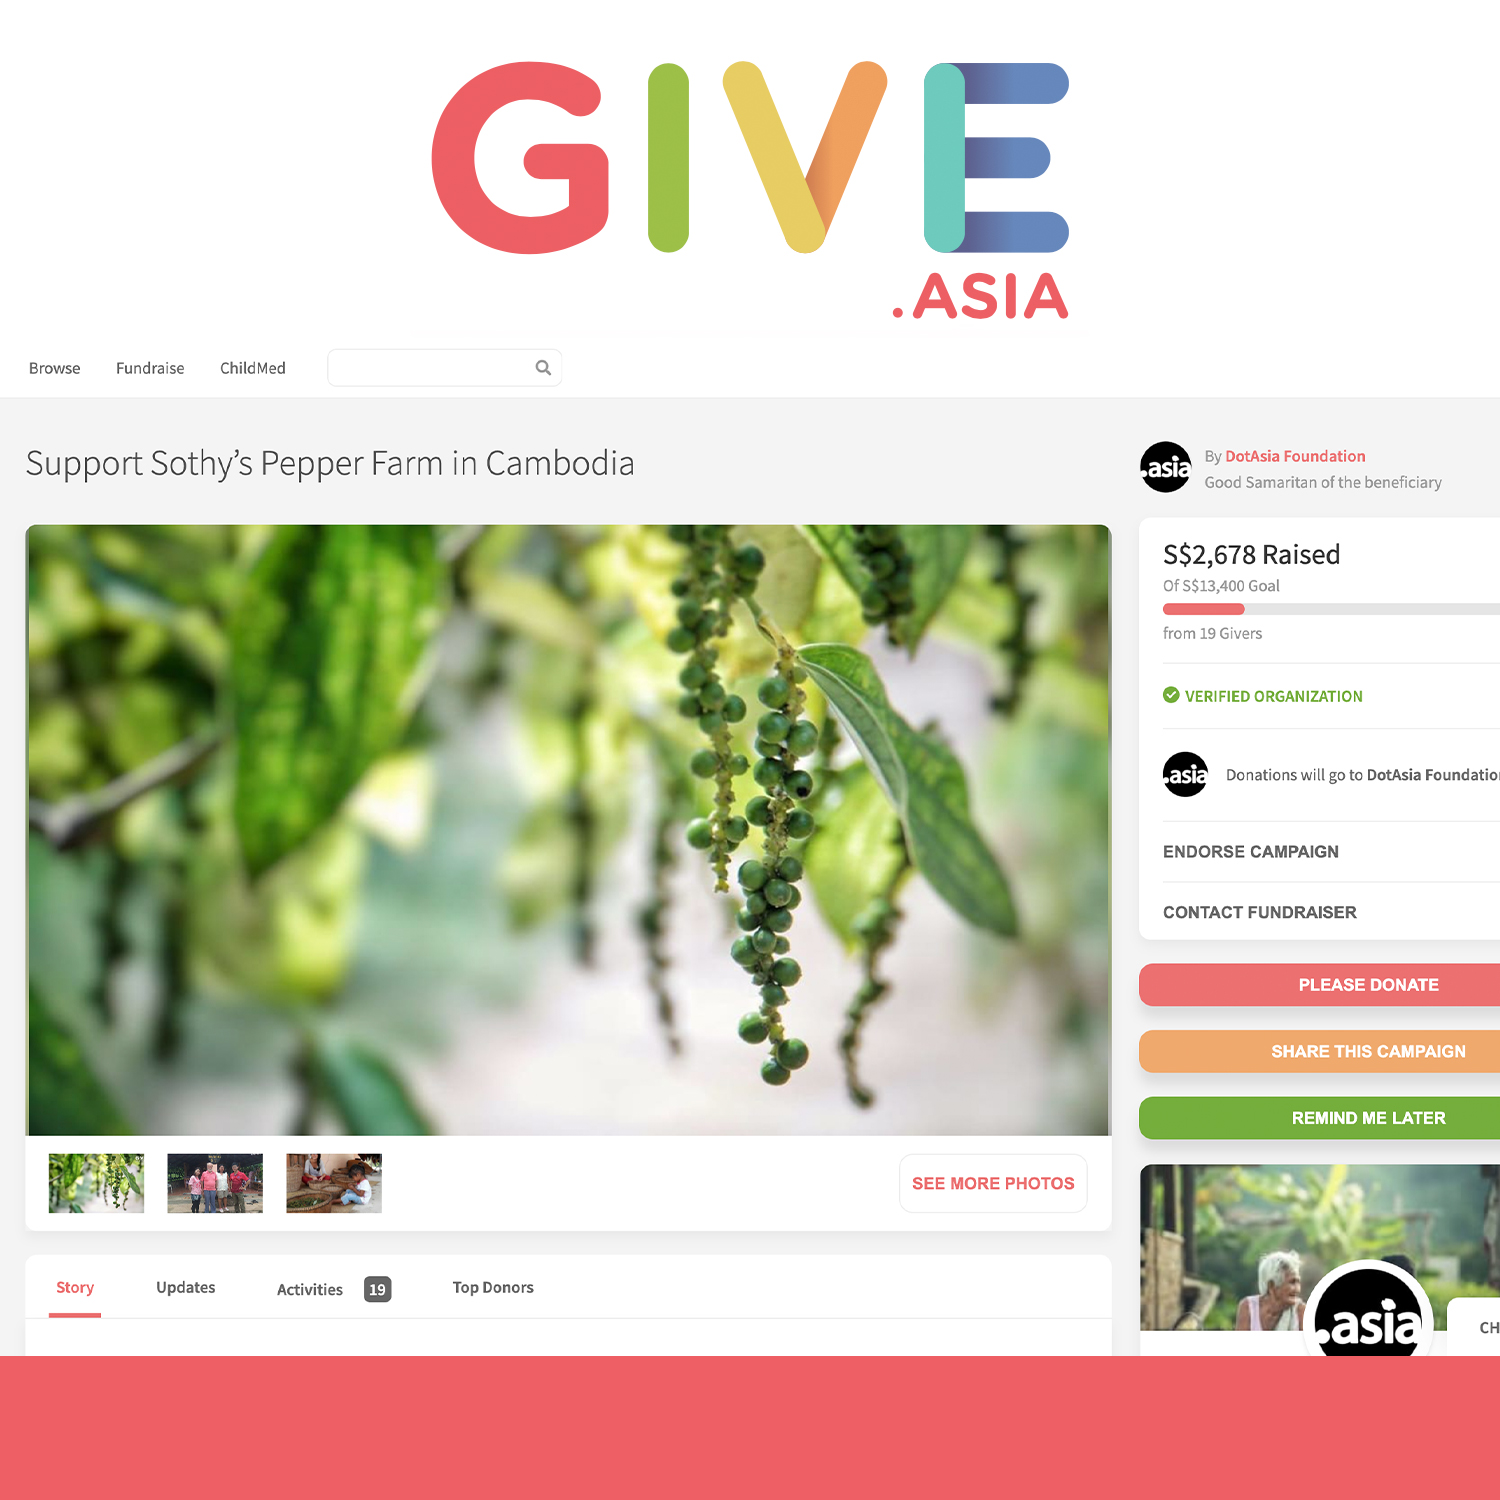 Give.Asia donation campaign: Support Sothy's Pepper Farm in Cambodia